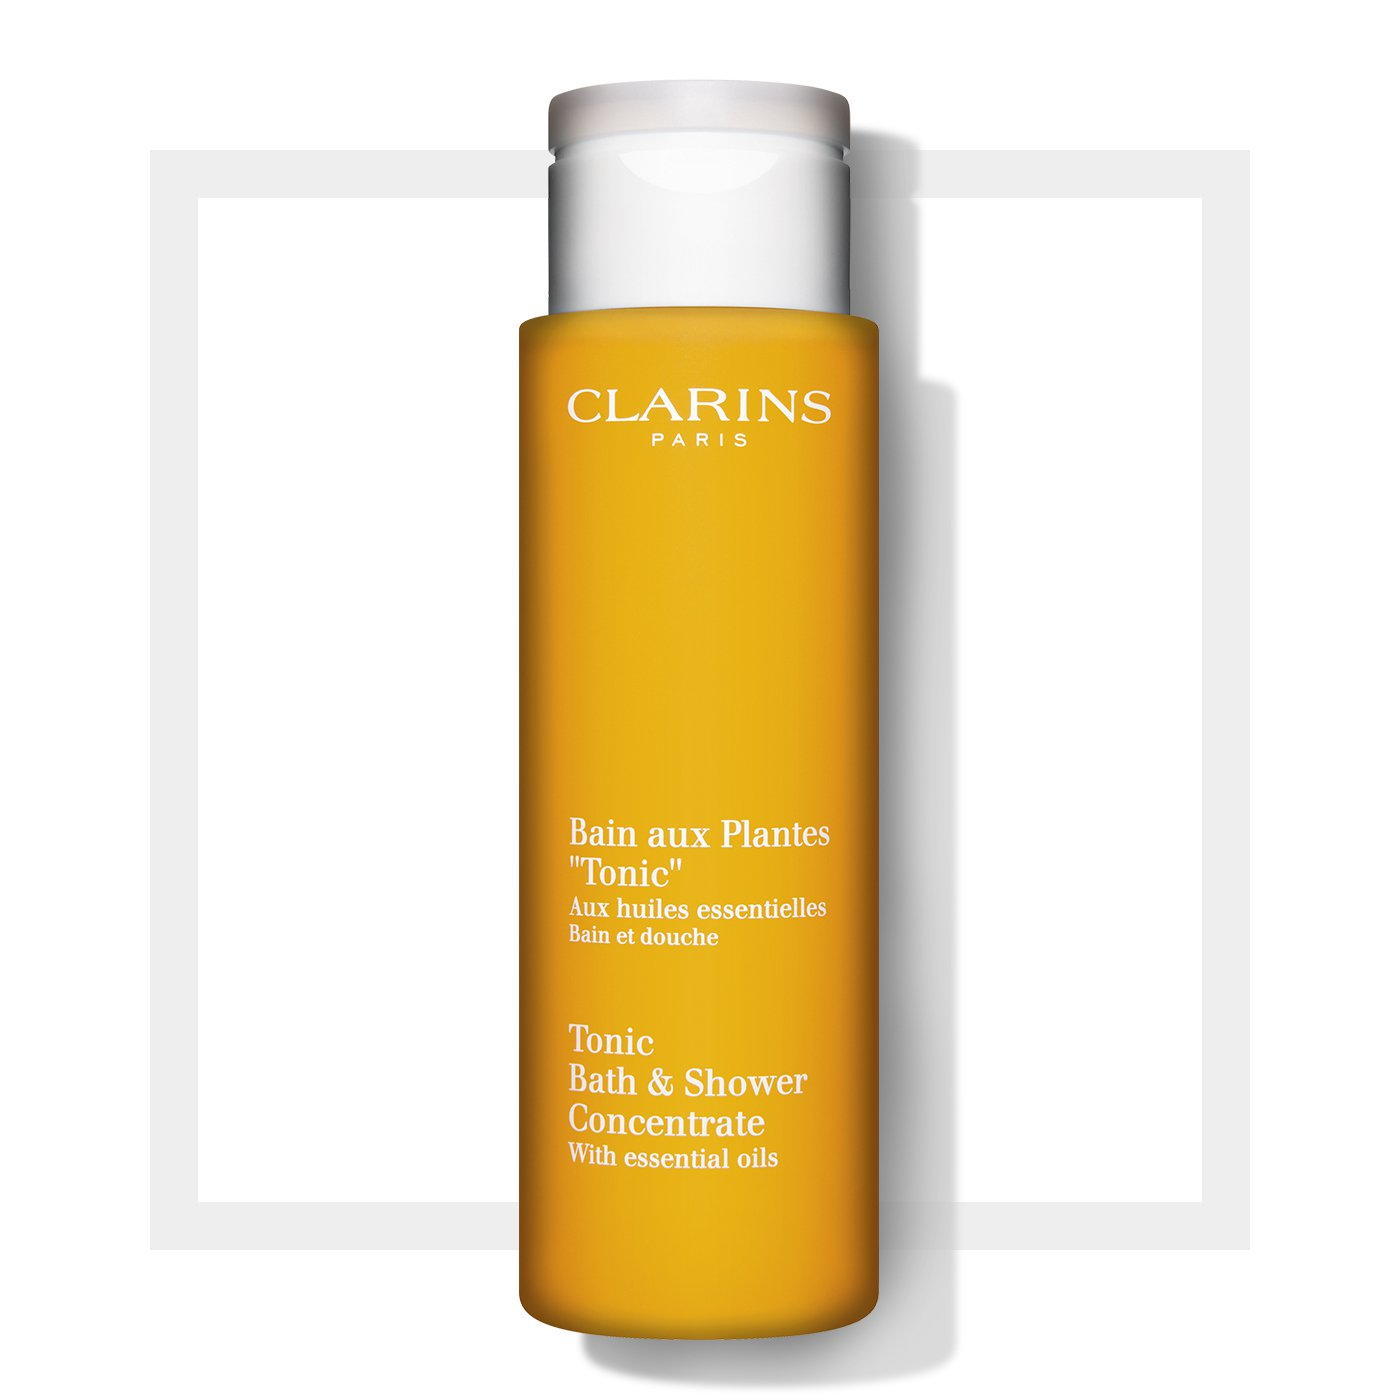 Tonic bath shower concentrate